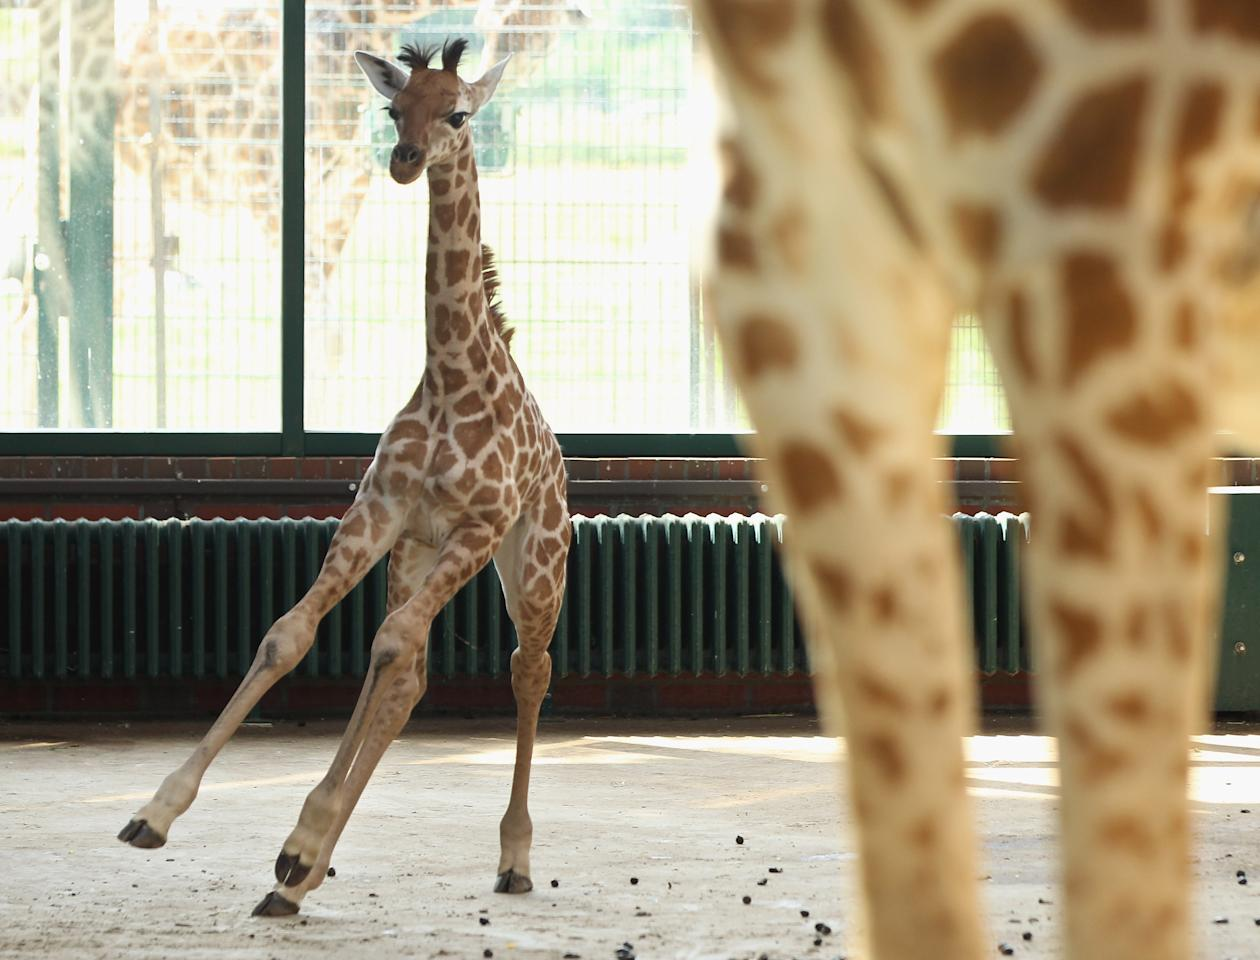 BERLIN, GERMANY - JUNE 29:  Jule, a baby Rothschild giraffe, runs in her enclosure at Tierpark Berlin zoo on June 29, 2012 in Berlin, Germany. Jule was born at the zoo on June 10.  (Photo by Sean Gallup/Getty Images)